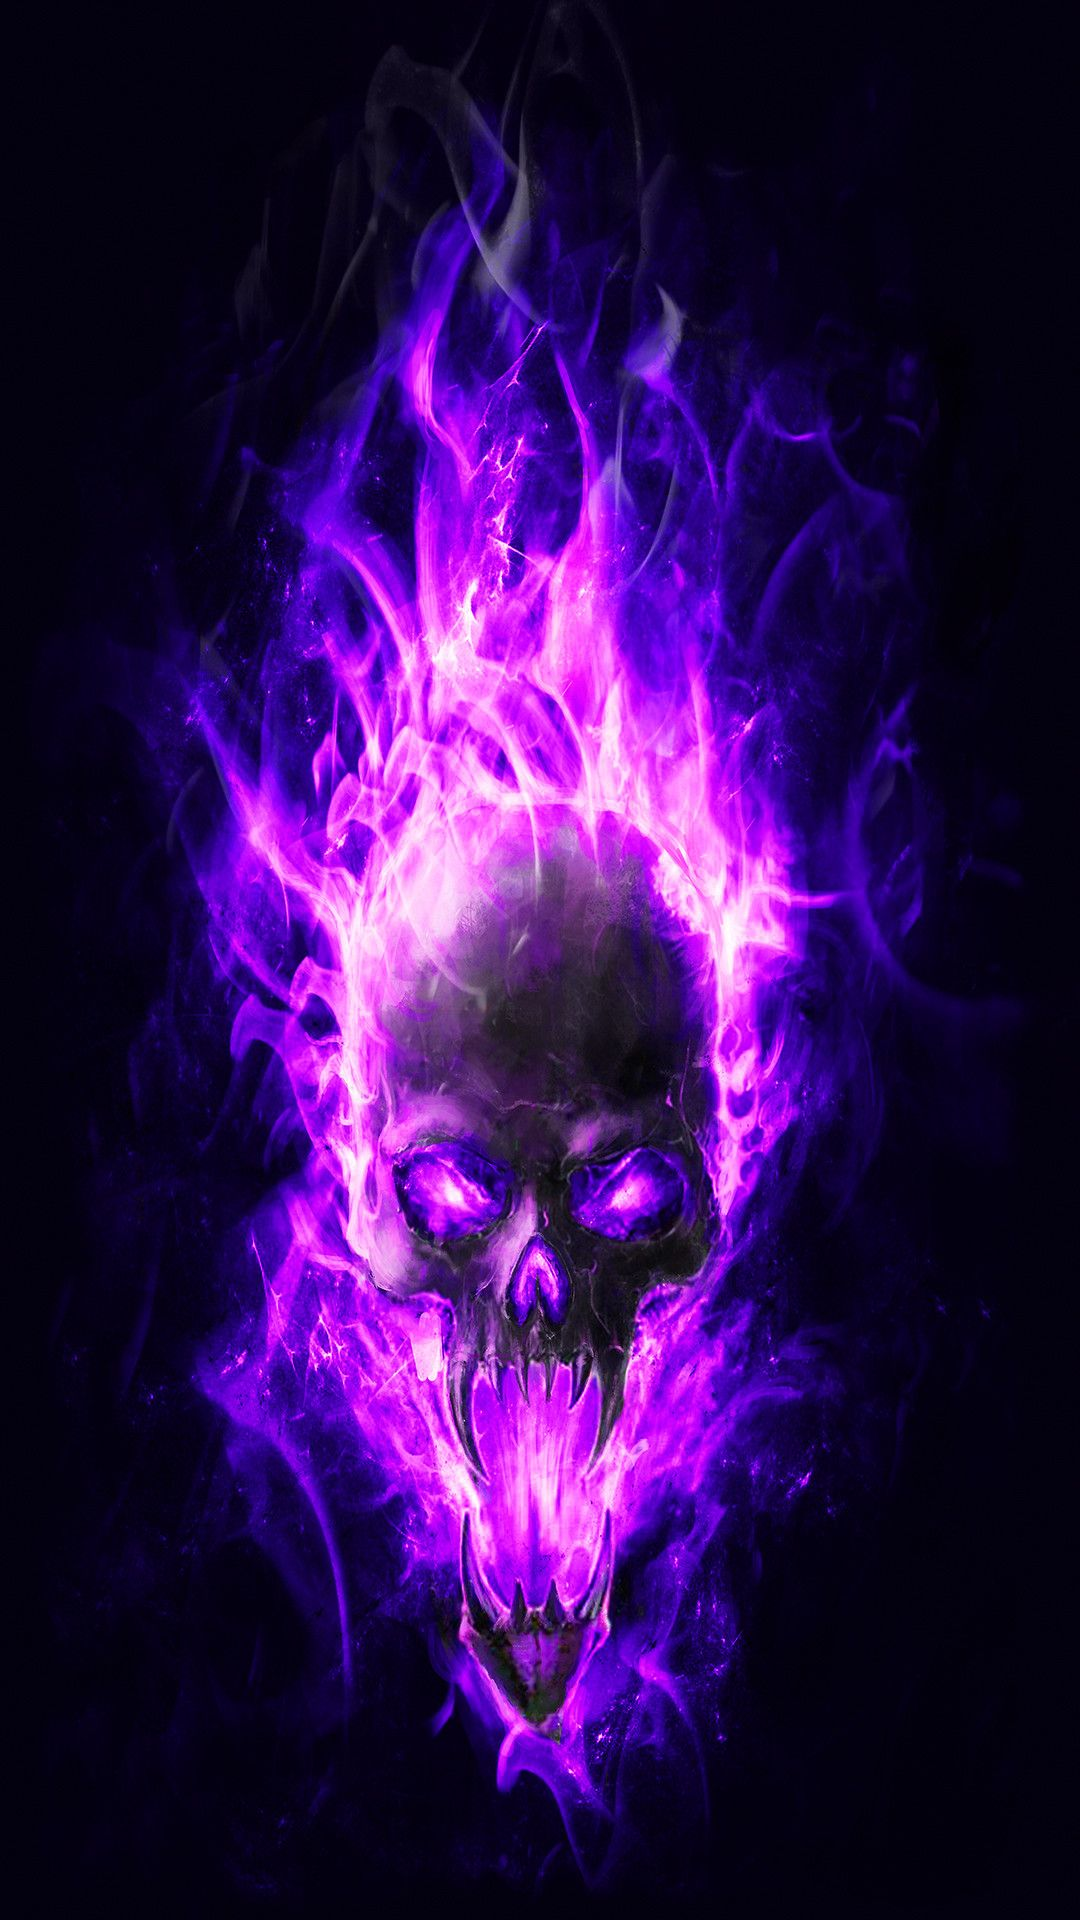 Res 1080x1920 Download Previewblue Flame Skull Wallpaper Skull Wallpaper Skull Artwork Skull Pictures